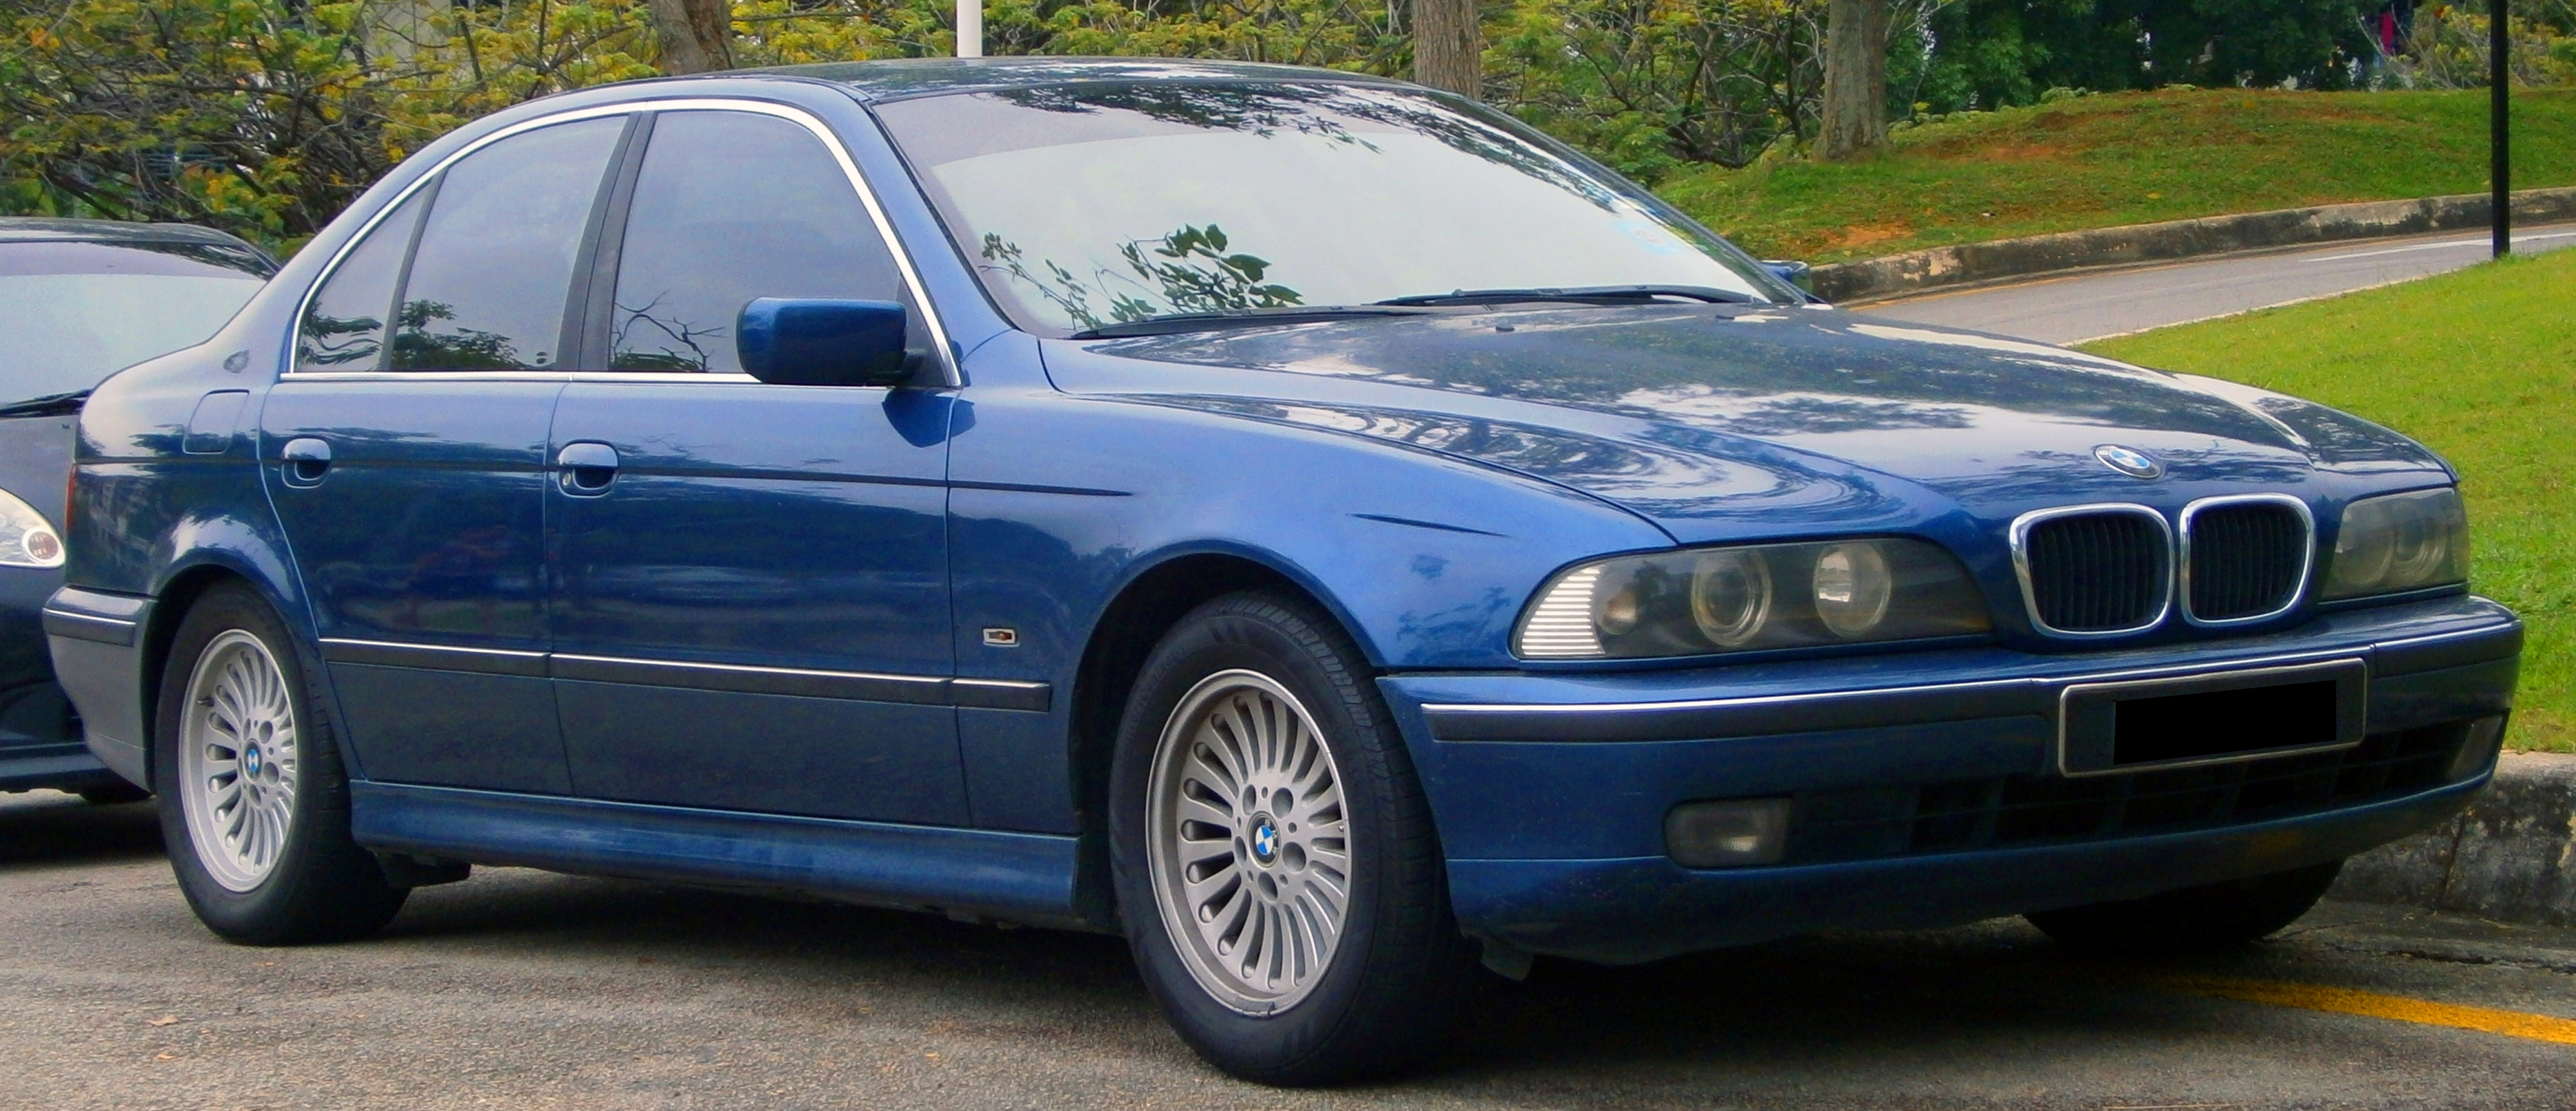 1999 BMW 5 Series - Information and photos - ZombieDrive